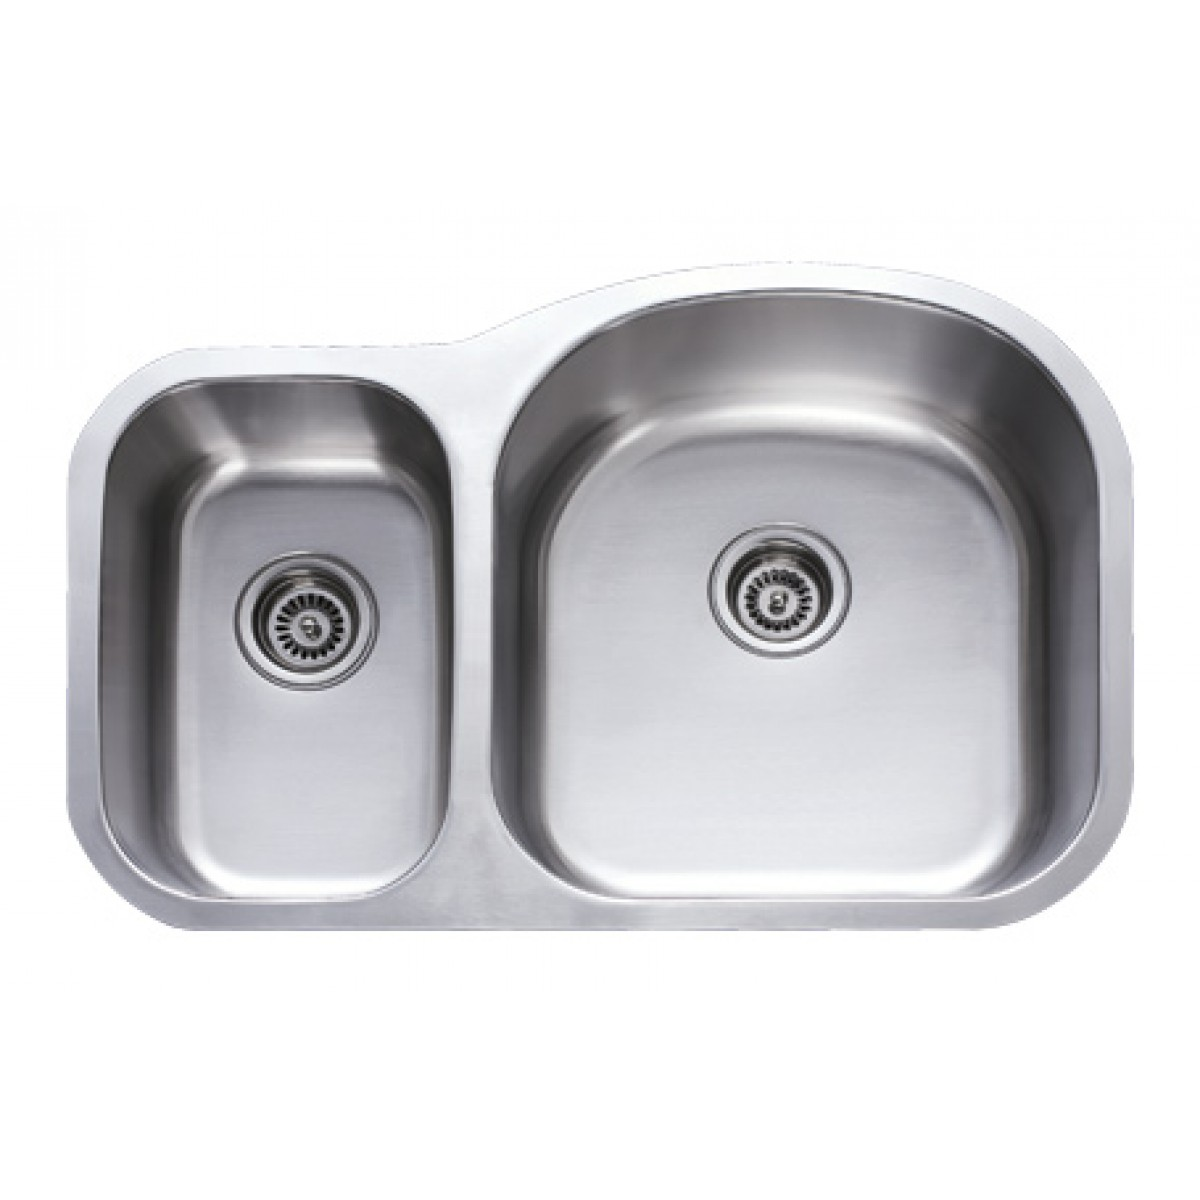 31 Inch Stainless Steel Undermount 30/70 Double Bowl Kitchen Sink   18 Gauge